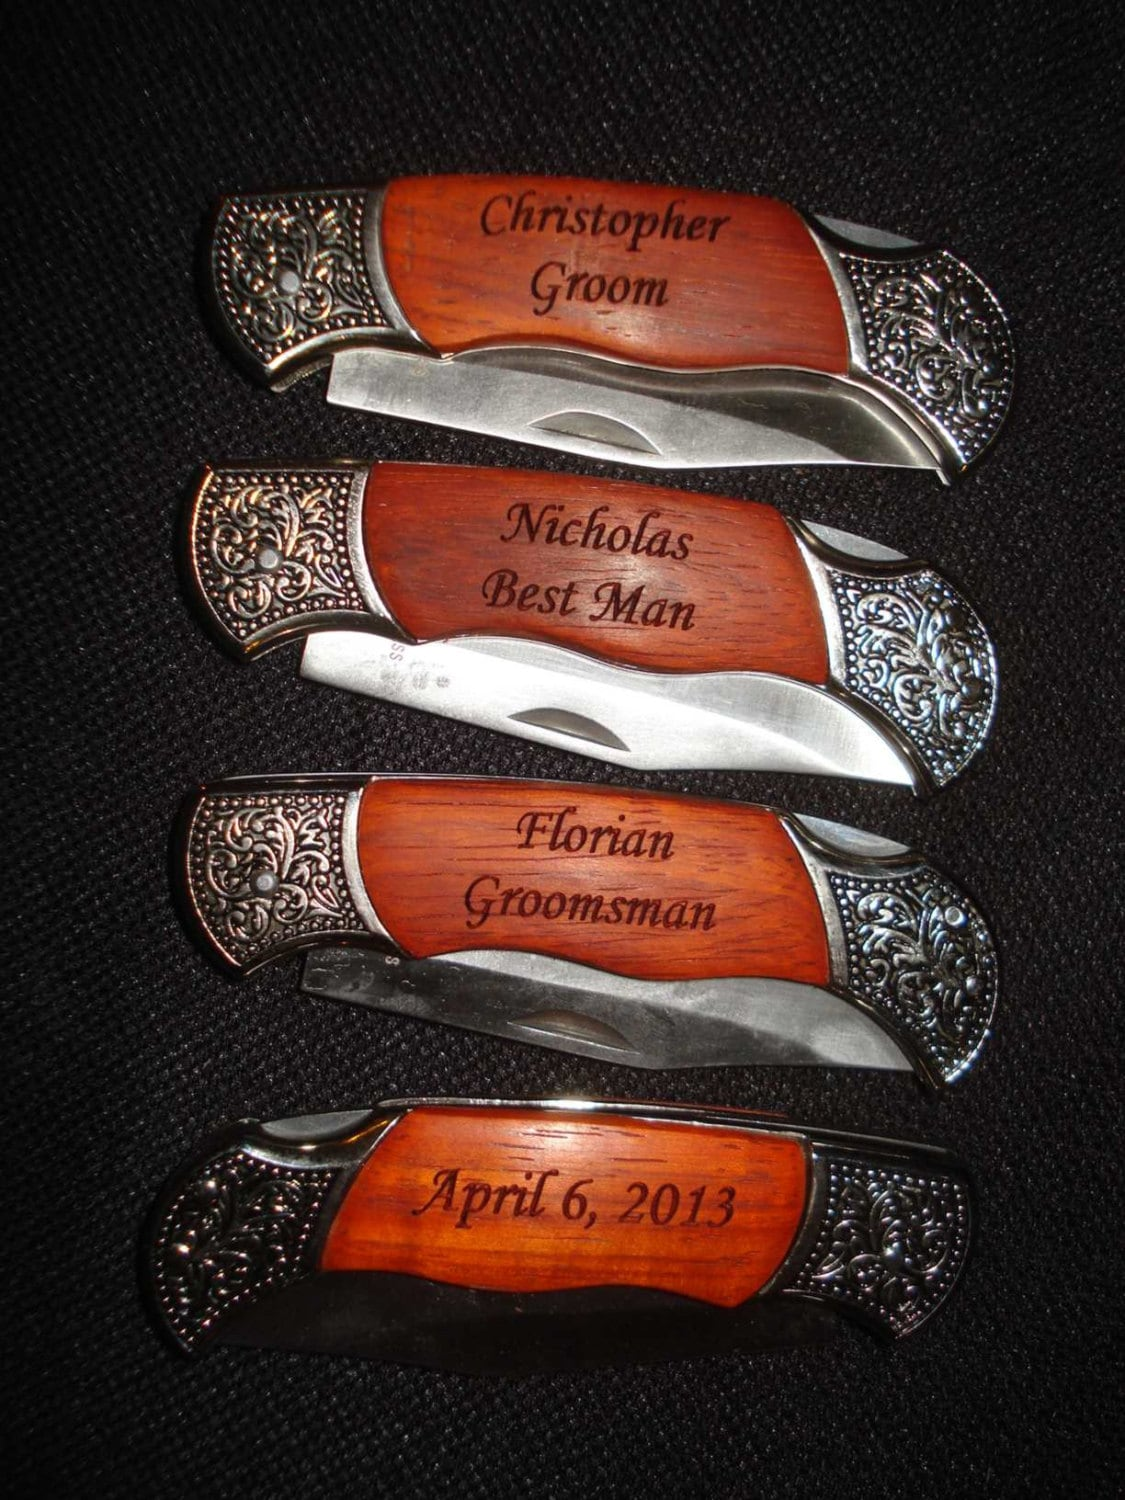 Wedding Gift For Best Man: 4 Personalized Engraved Pocket Knives